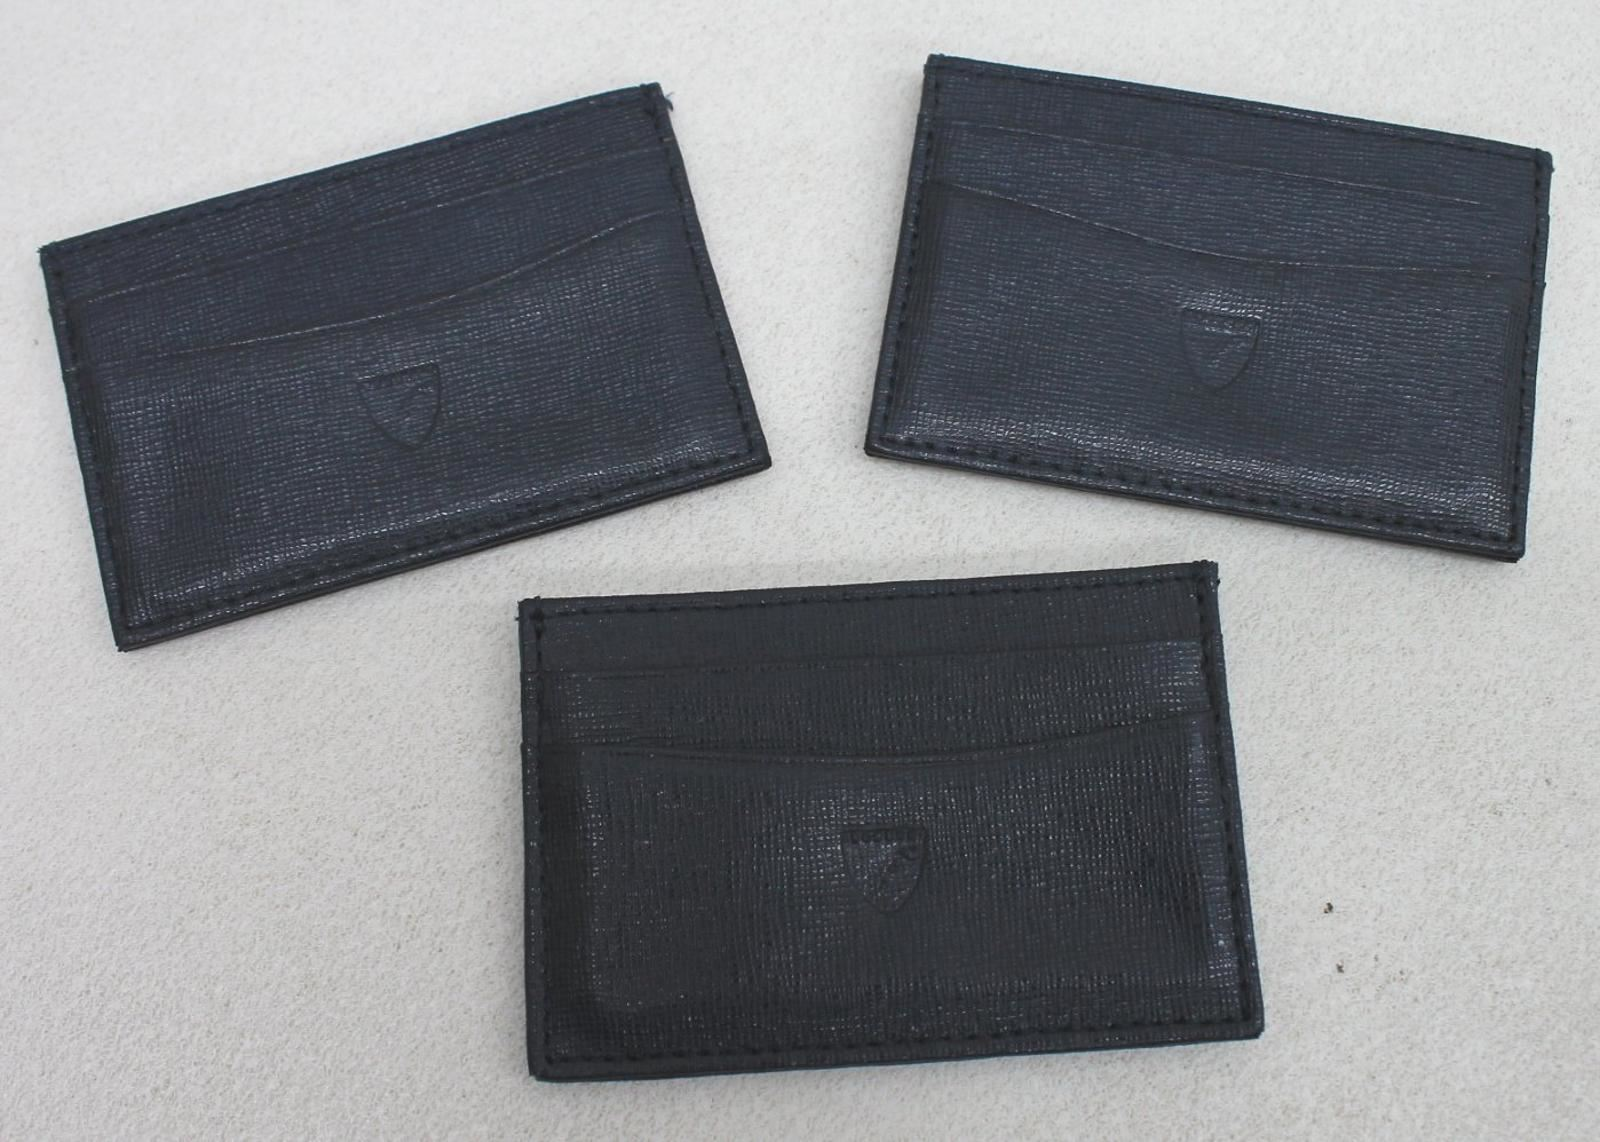 ASPINAL-OF-LONDON-Men-039-s-Blue-Saffiano-Leather-Slim-Credit-Card-Cases-Damaged-3x